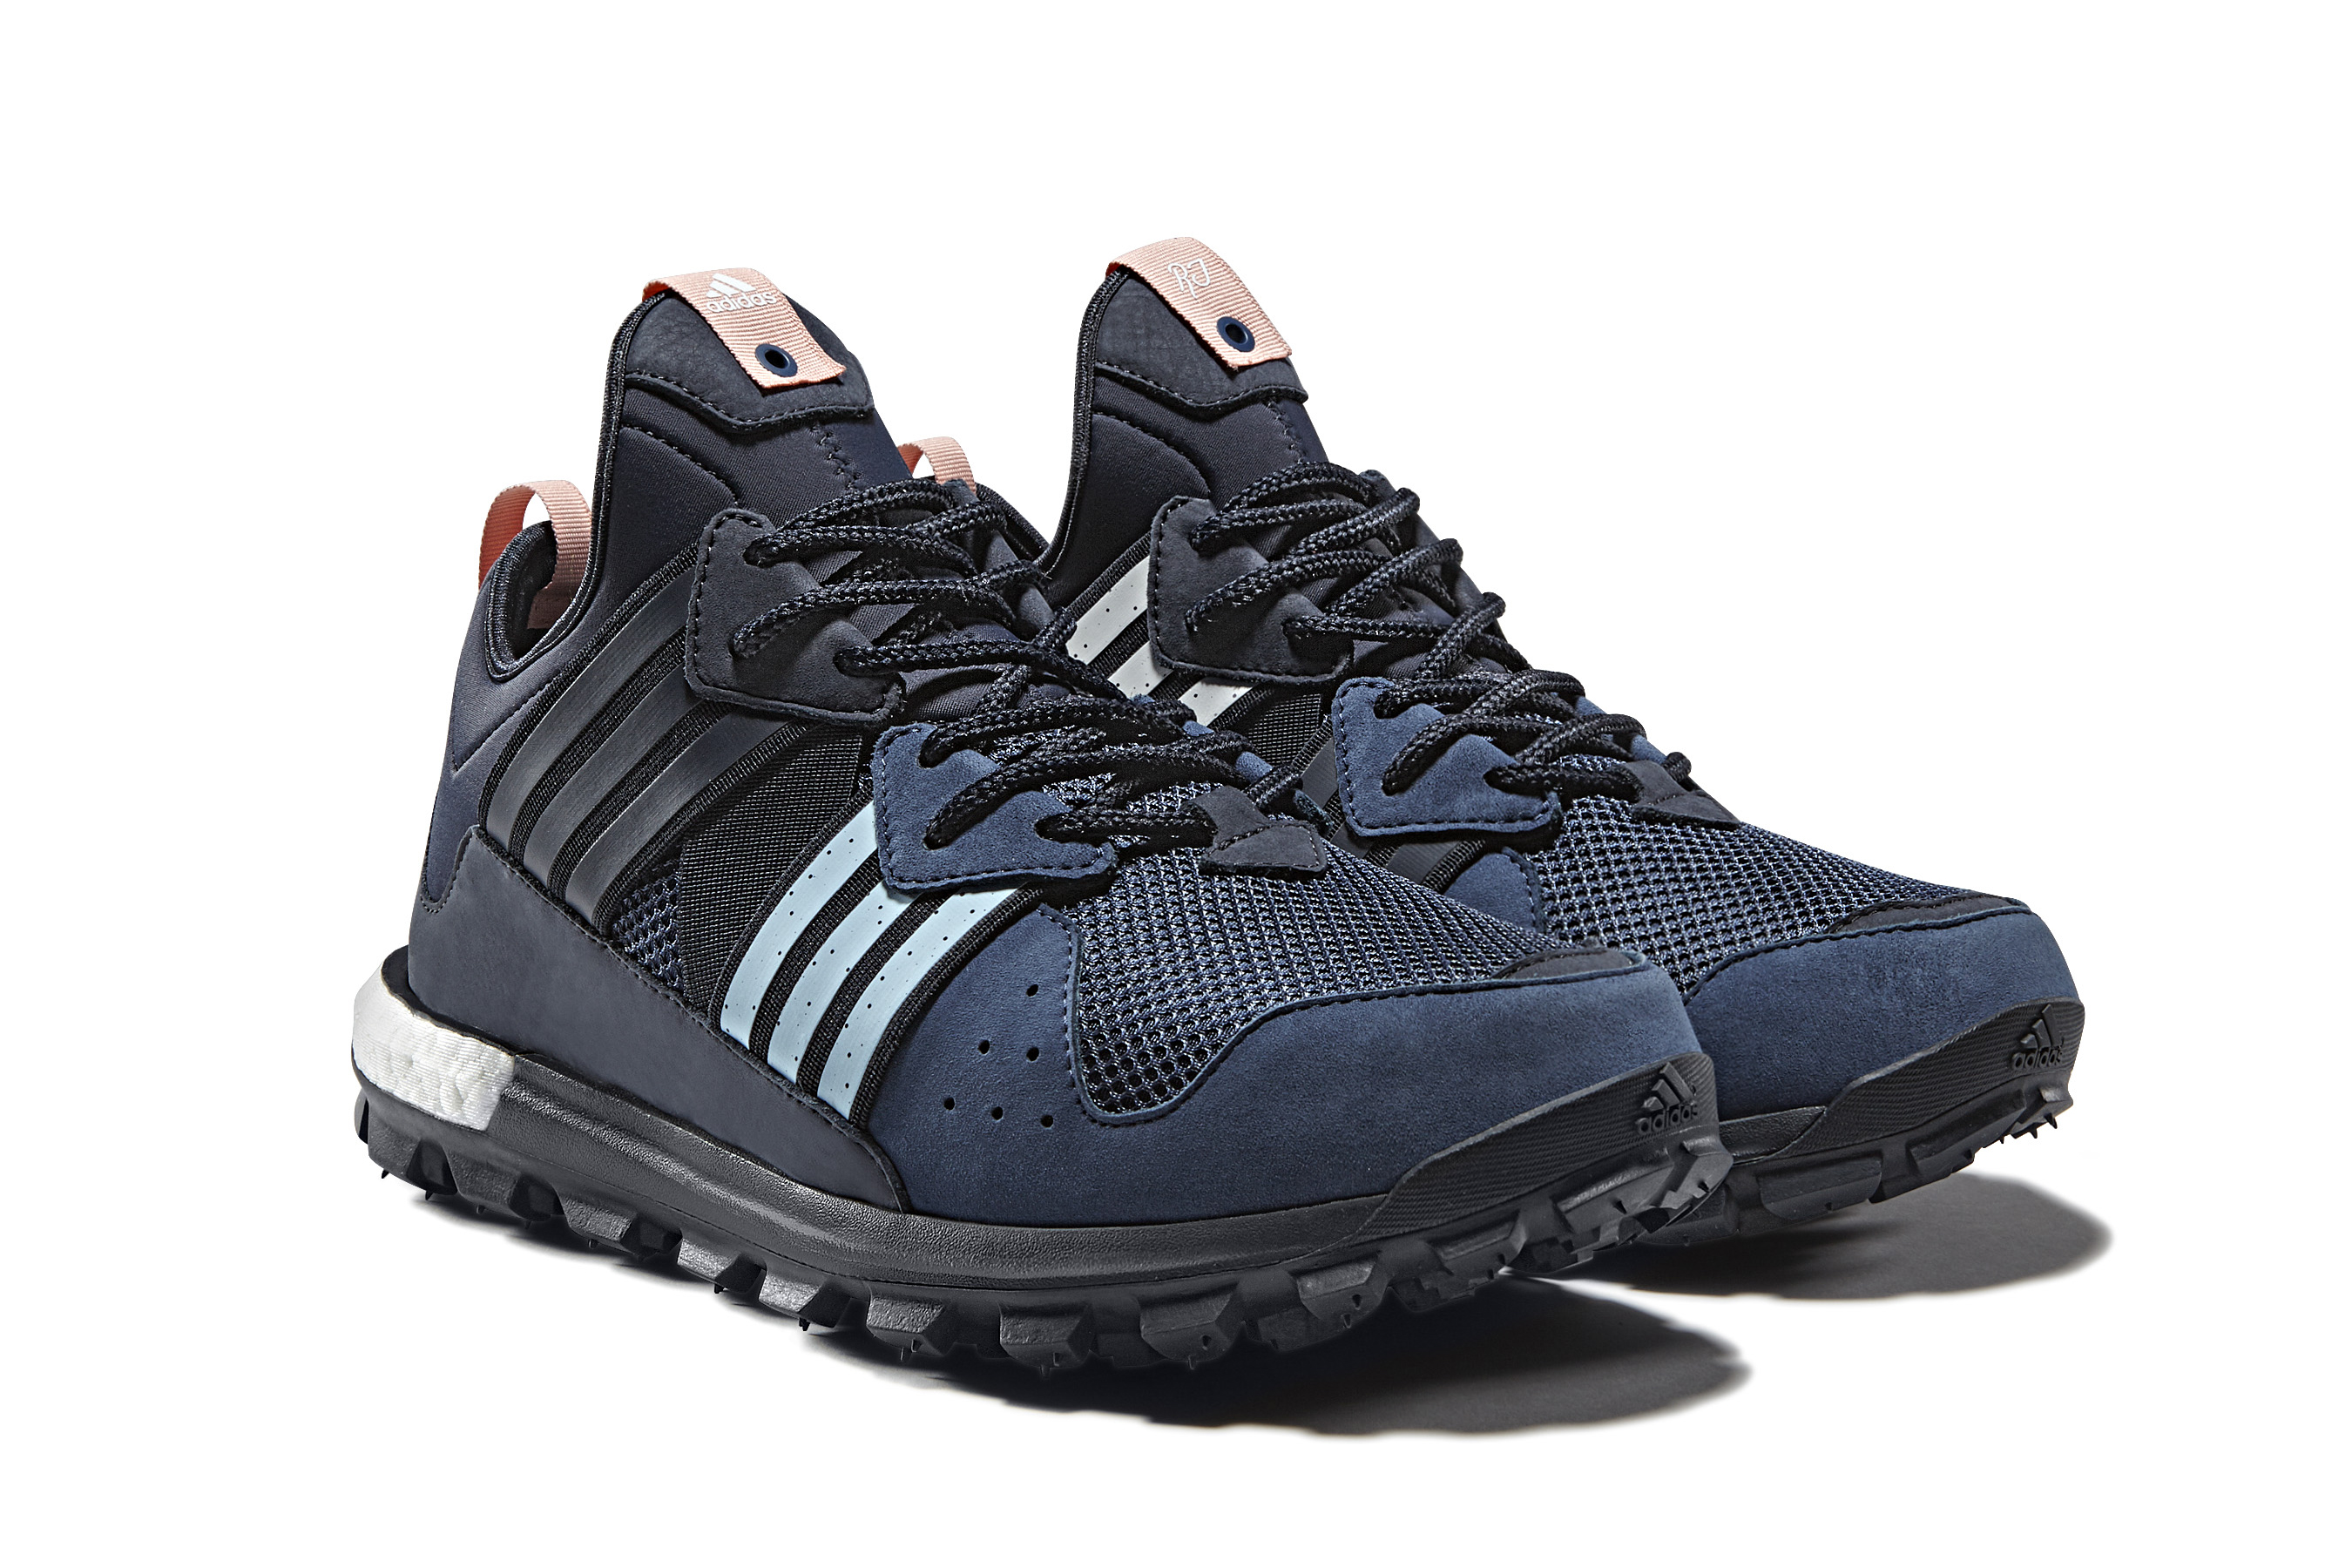 kith x adidas response trail boost aio bot releases. Black Bedroom Furniture Sets. Home Design Ideas